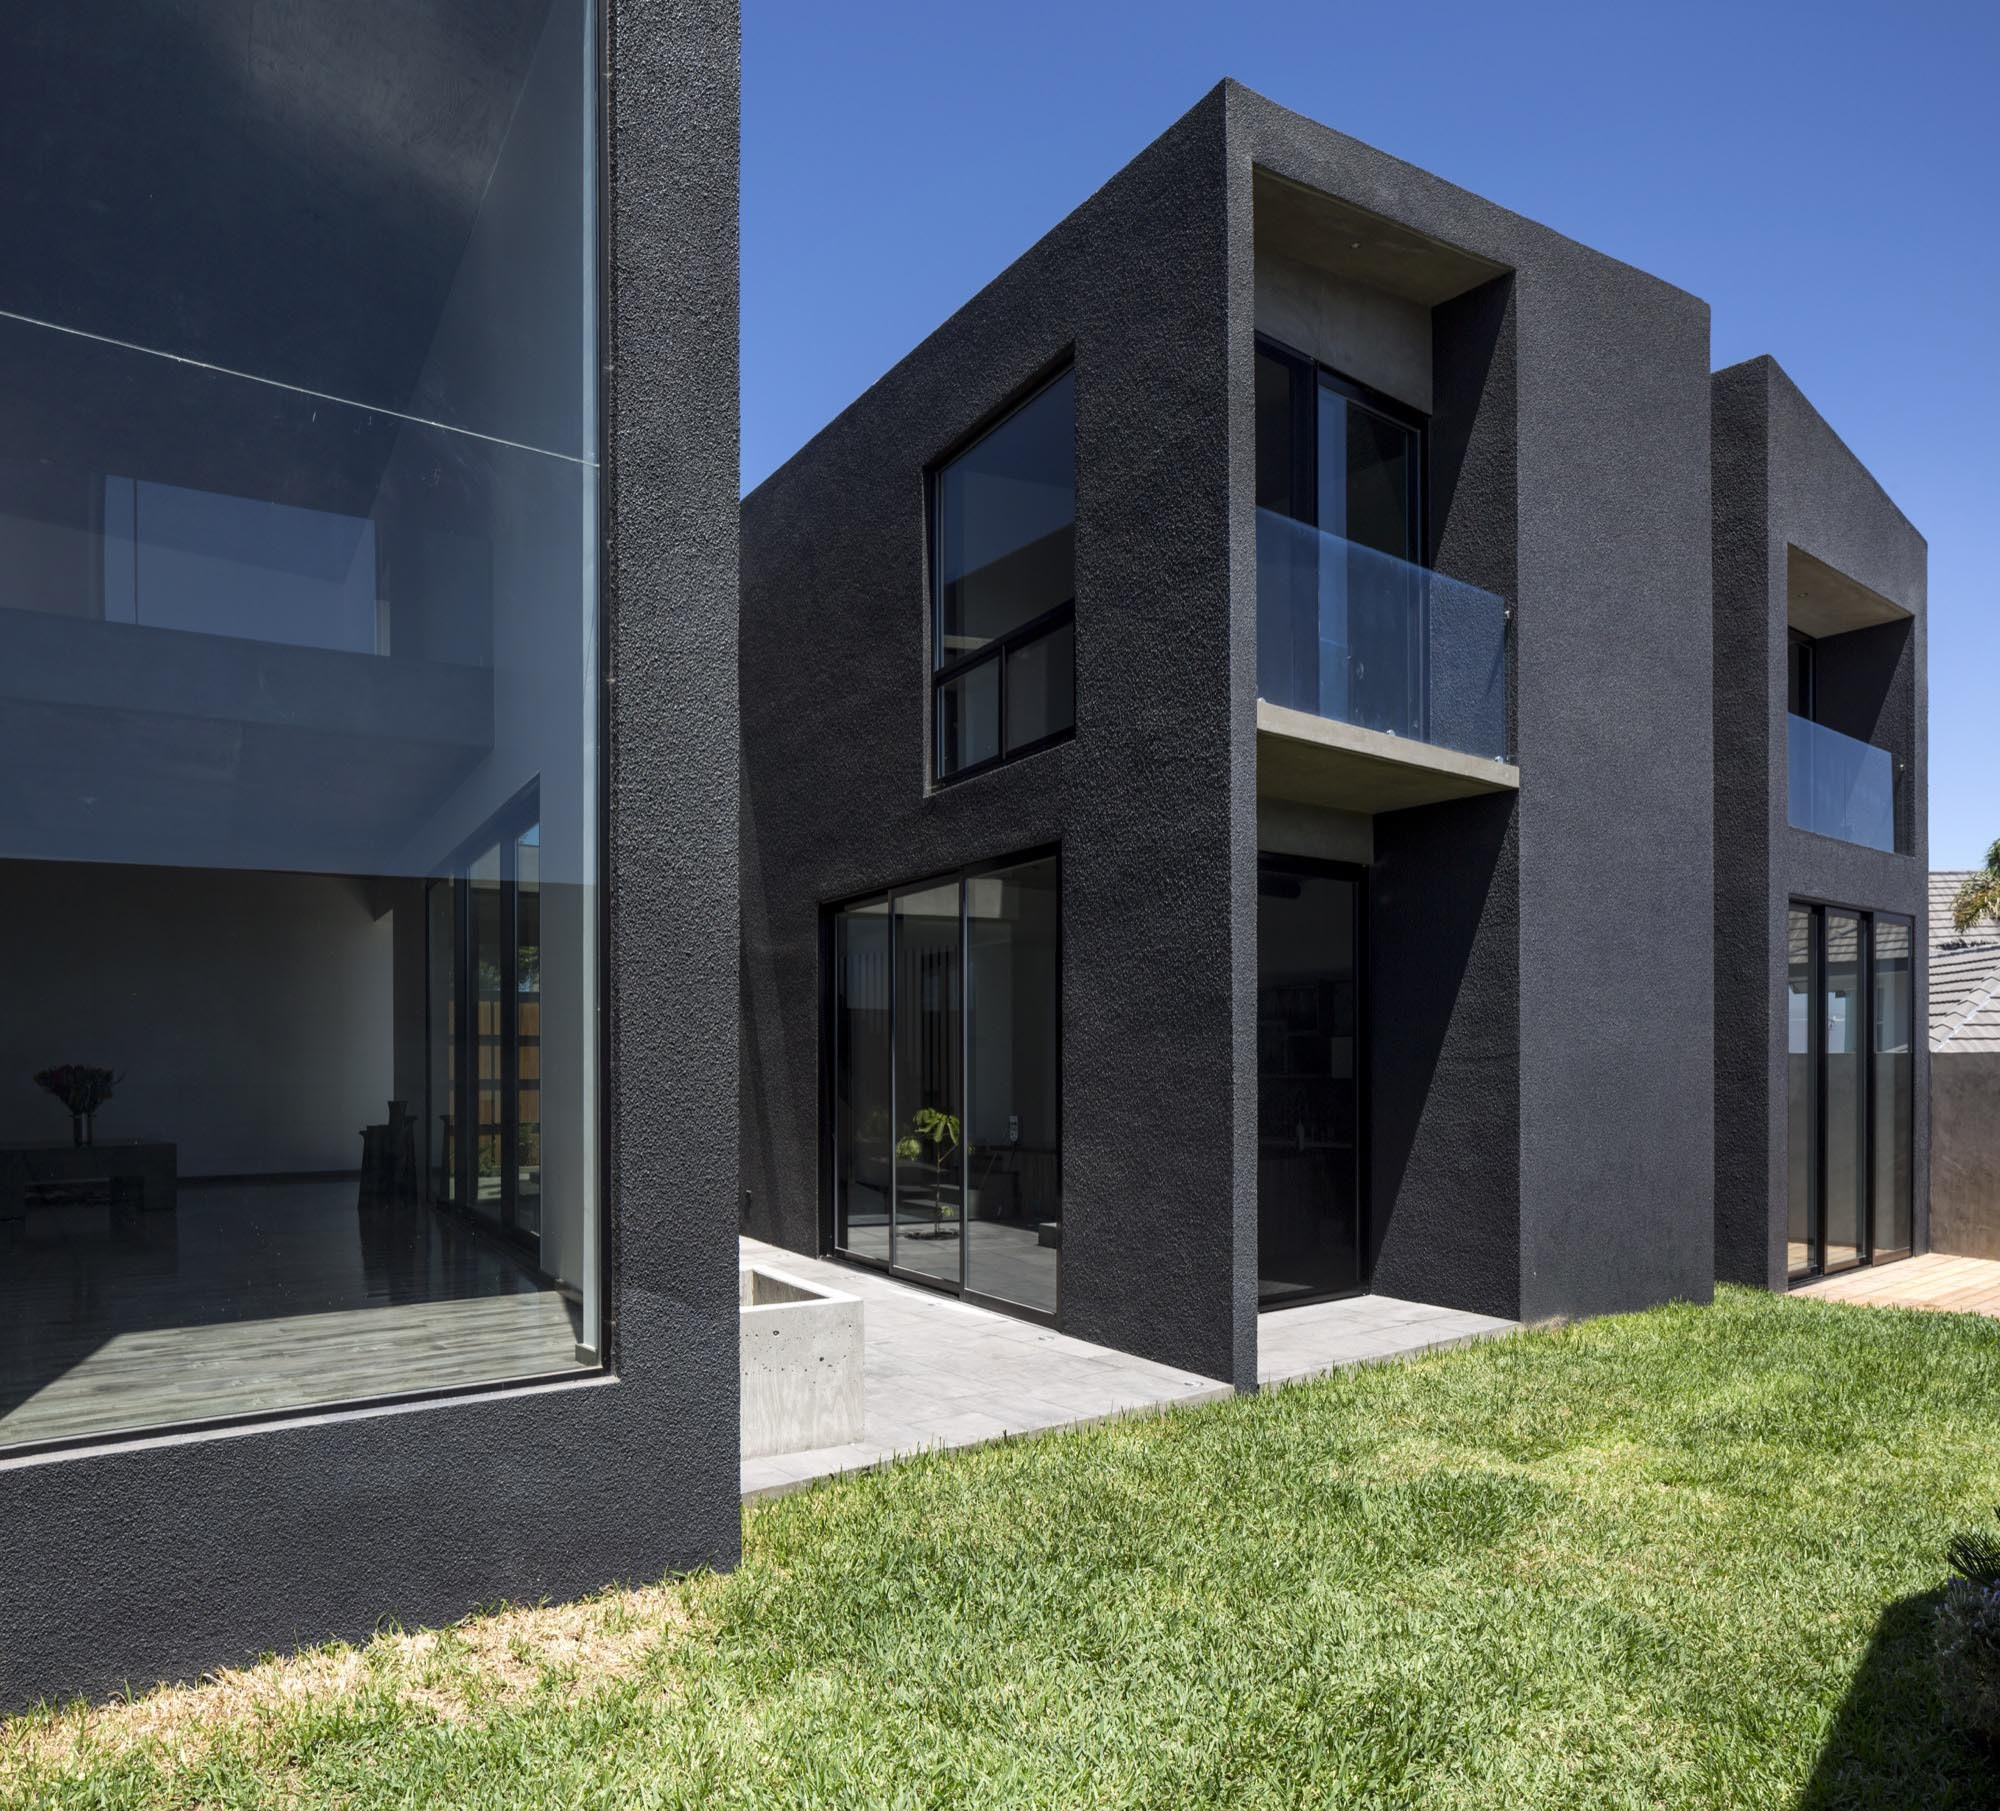 Gallery of TLP House / T38 studio - 4